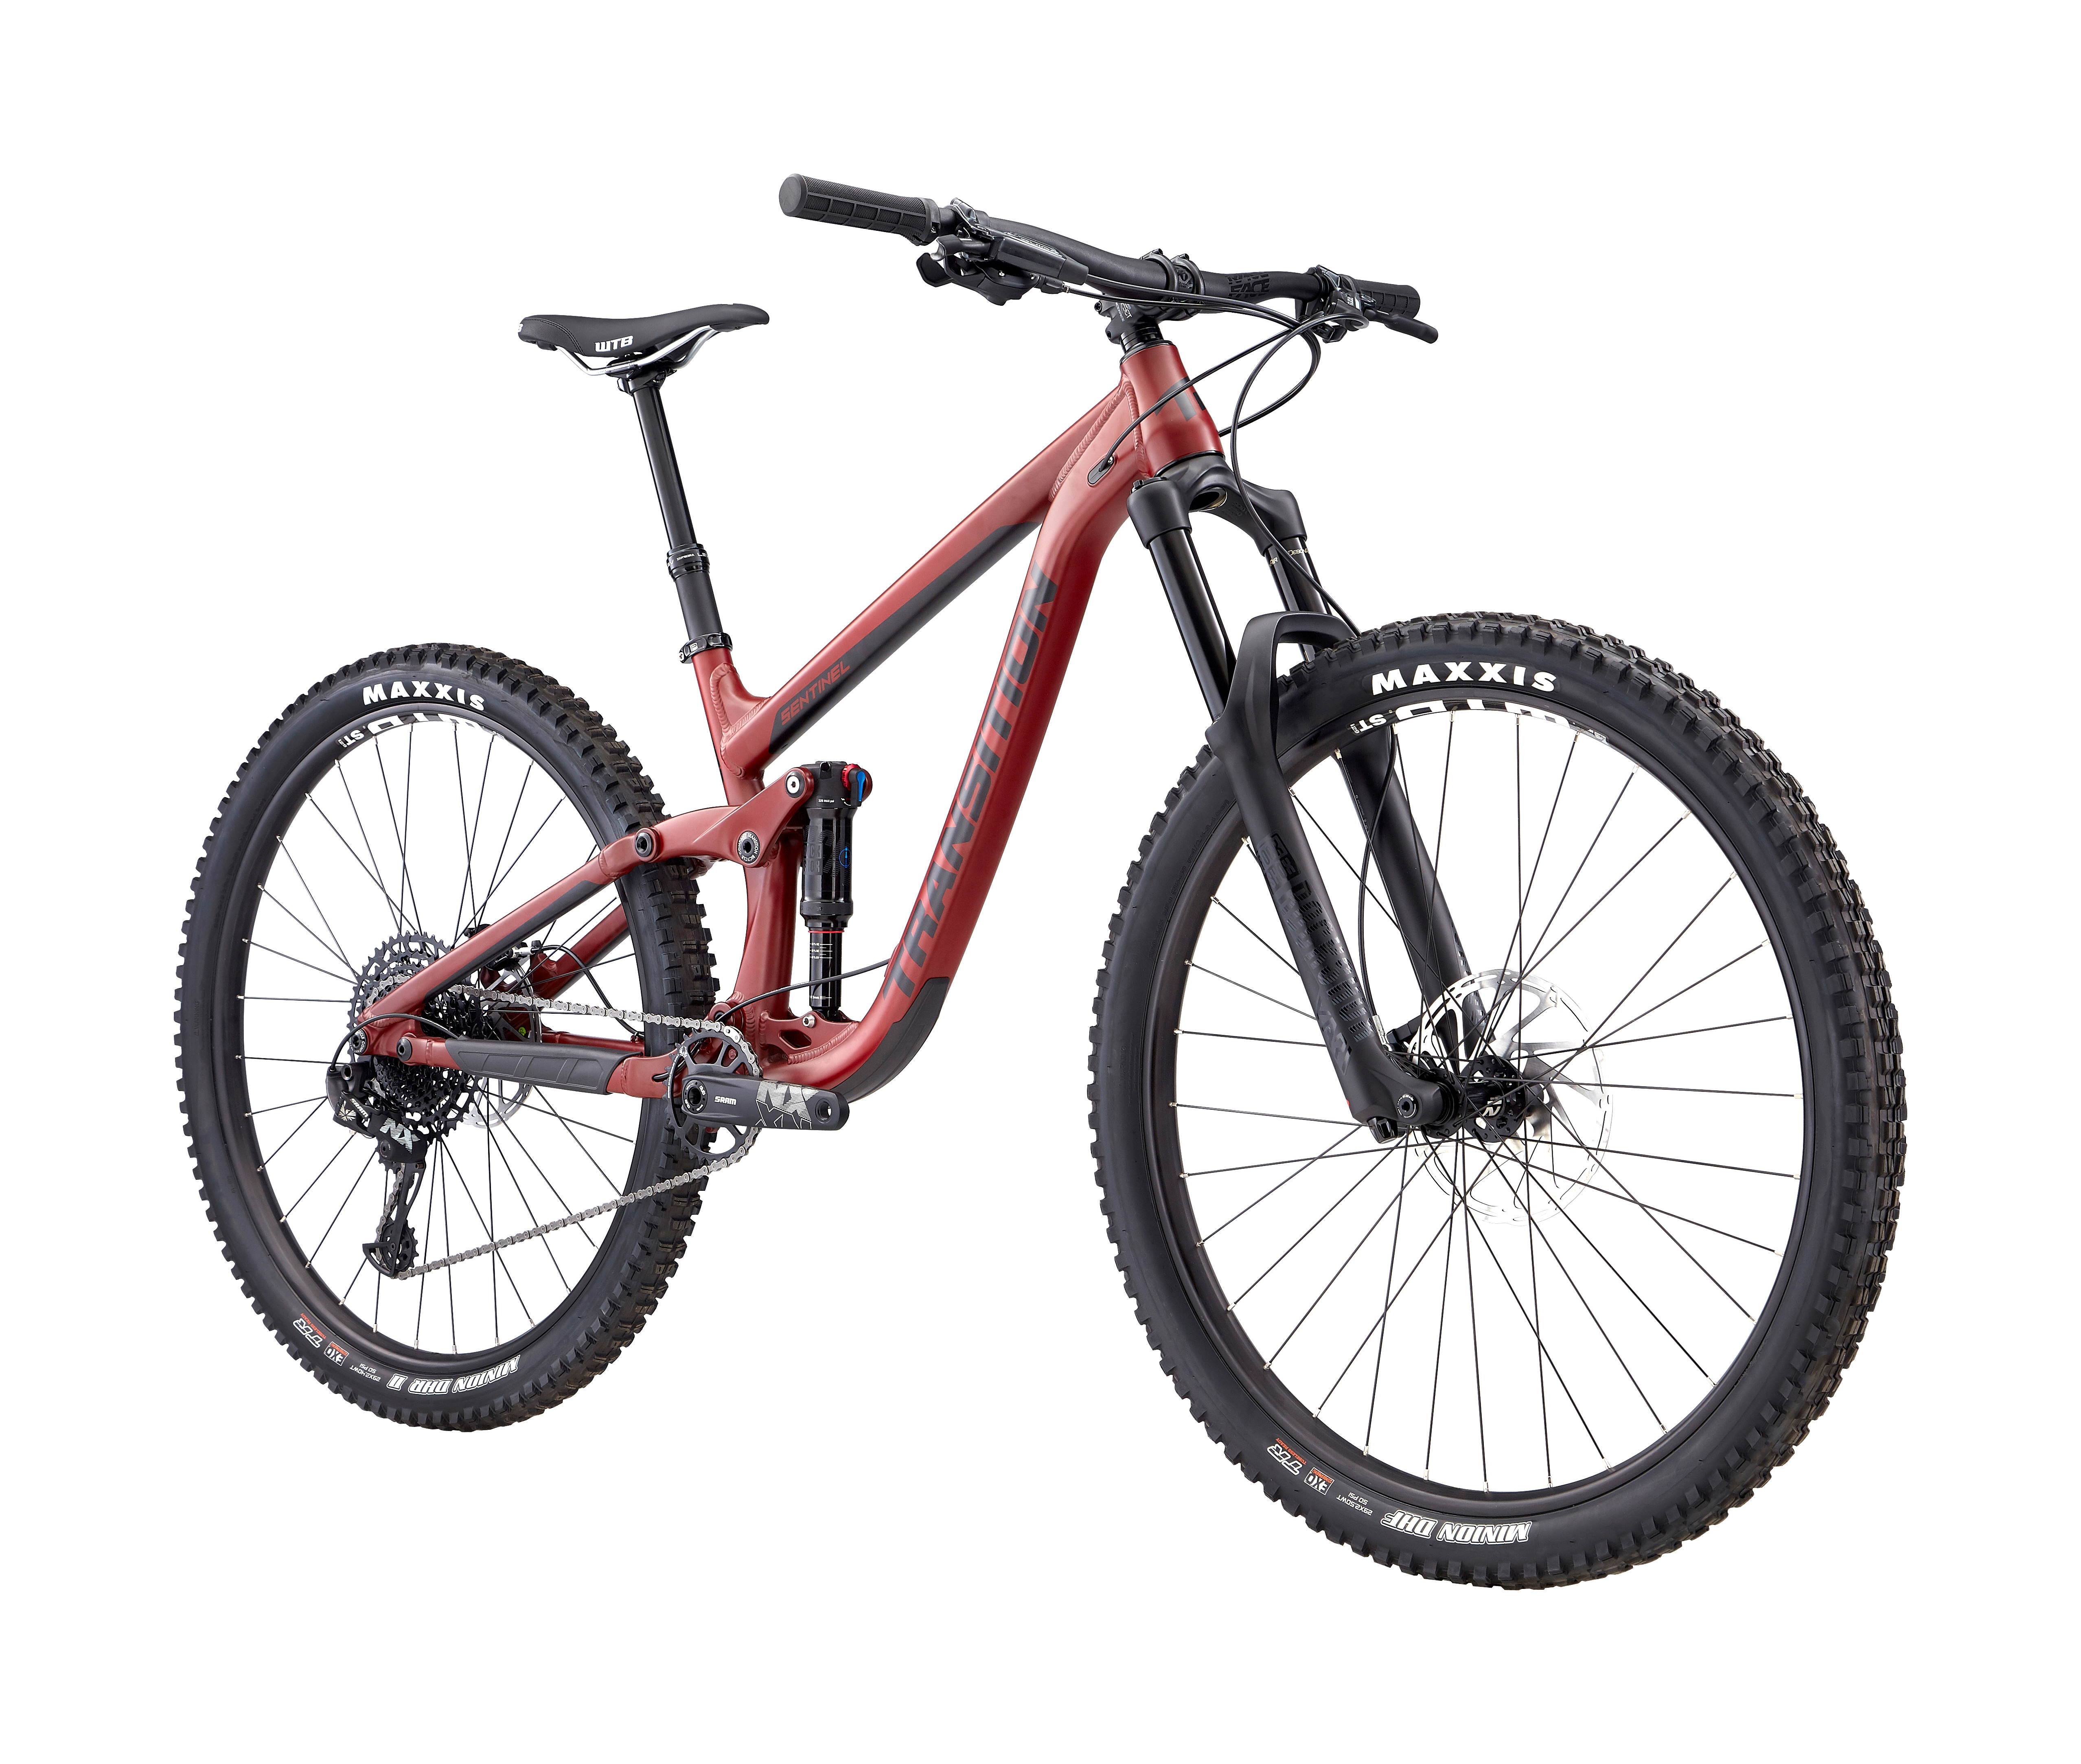 2019 Transition Sentinel NX Alloy Full Suspension Mountain Bike in Red | MTB